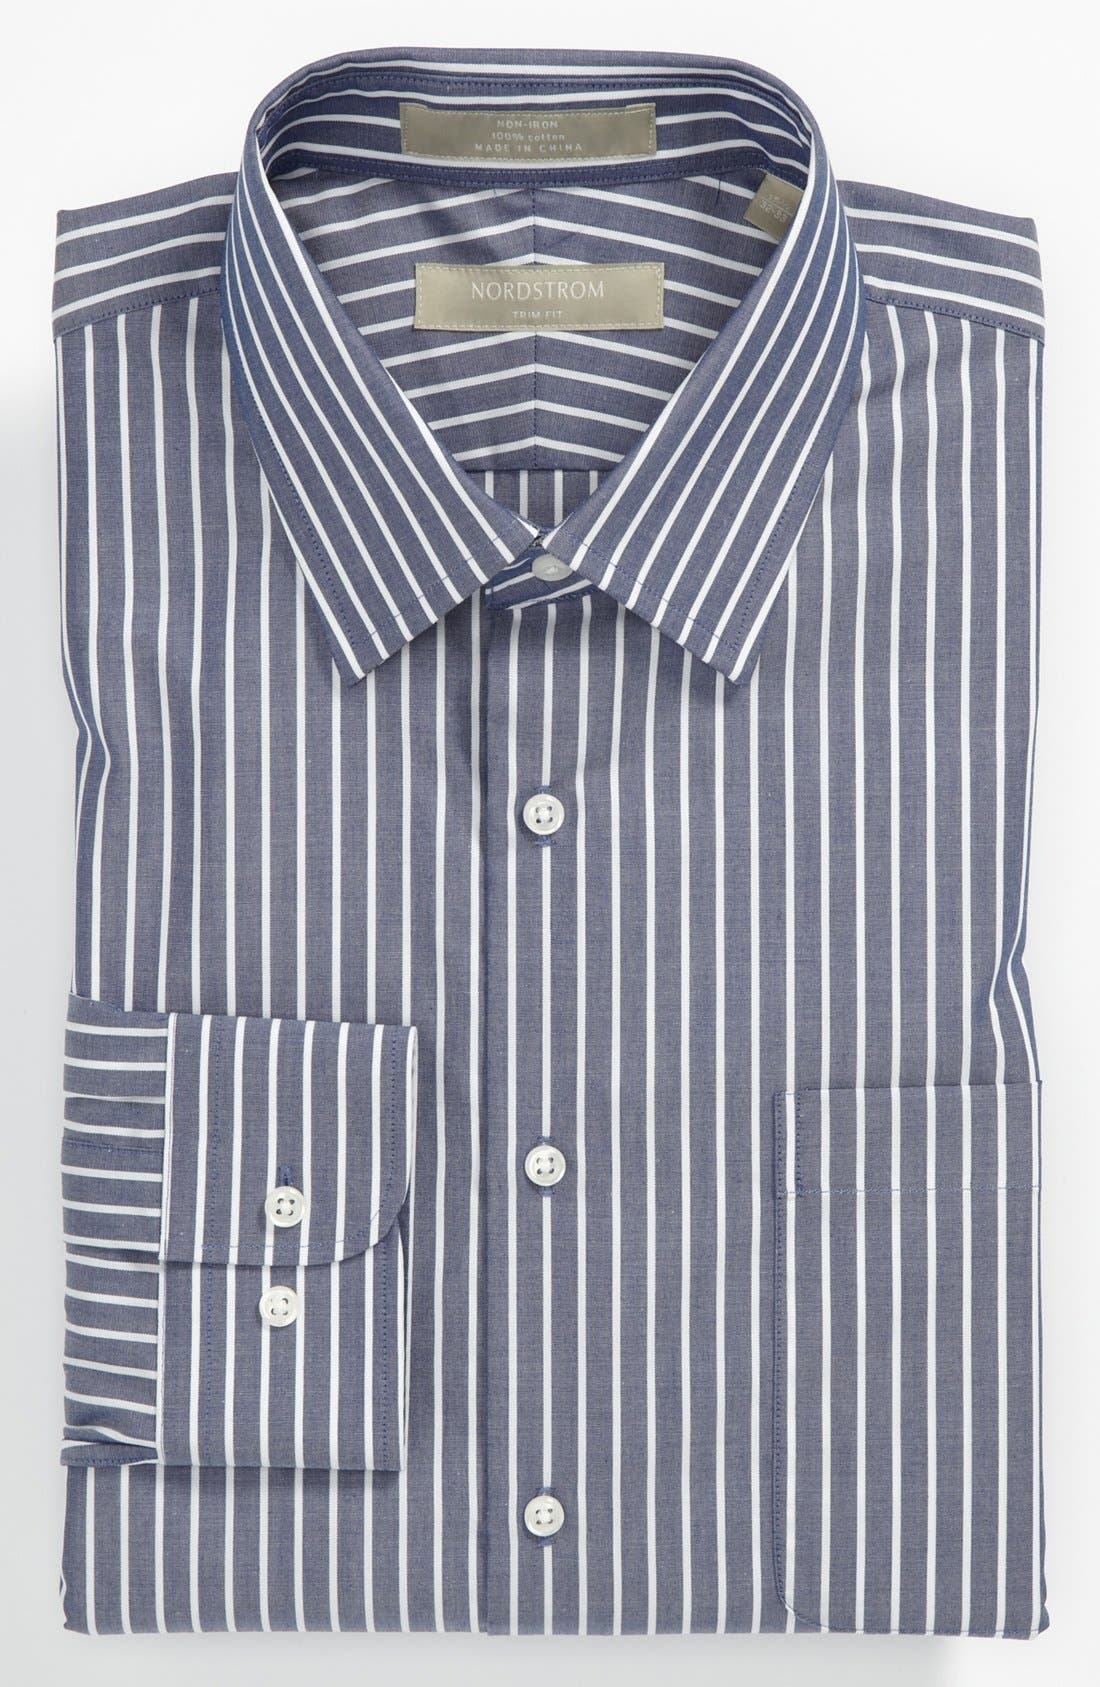 Alternate Image 1 Selected - Nordstrom Trim Fit Dress Shirt